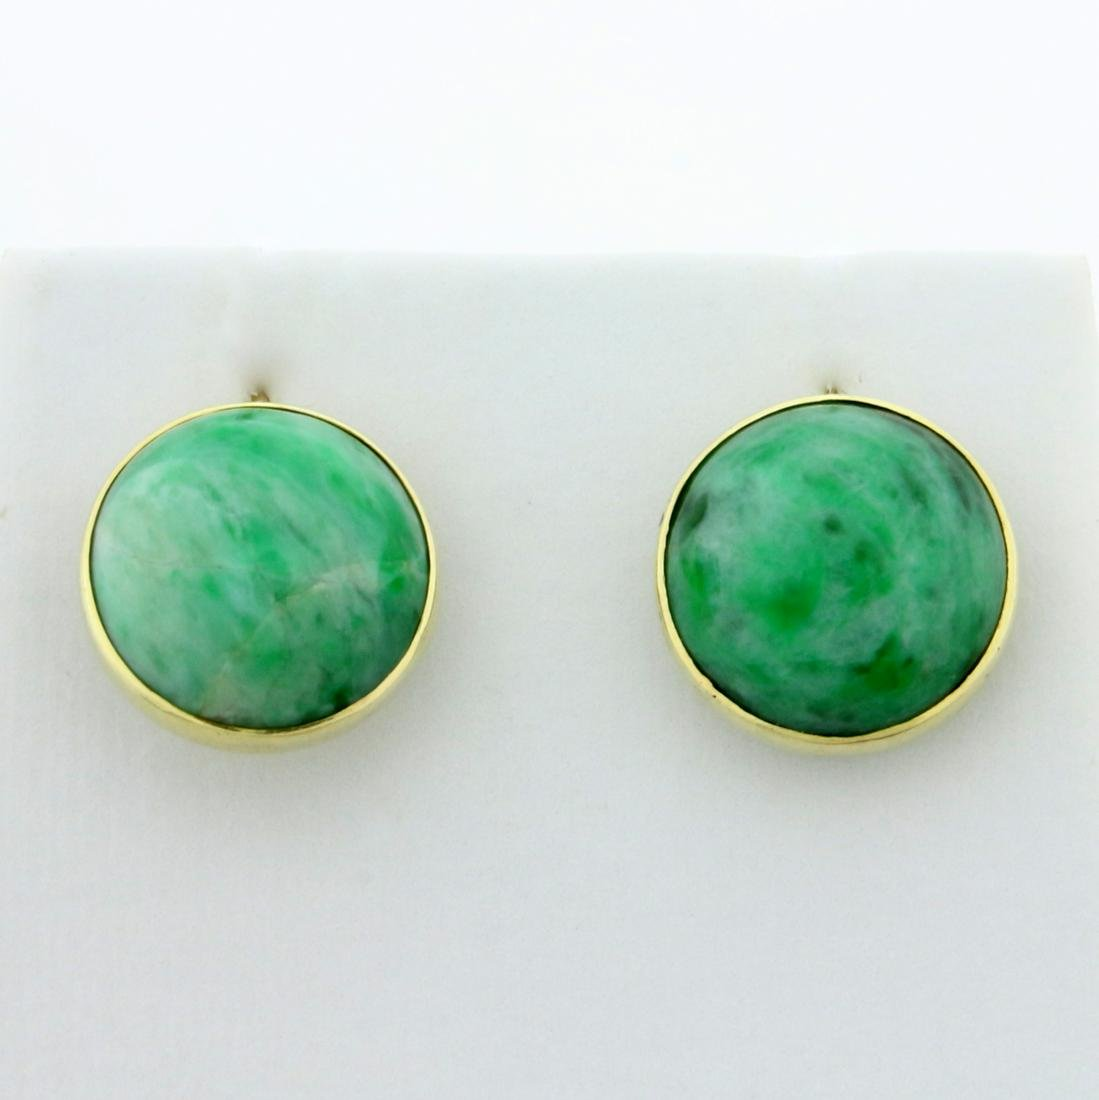 Vintage Natural Jade Screw-back Earrings in 14K Yellow